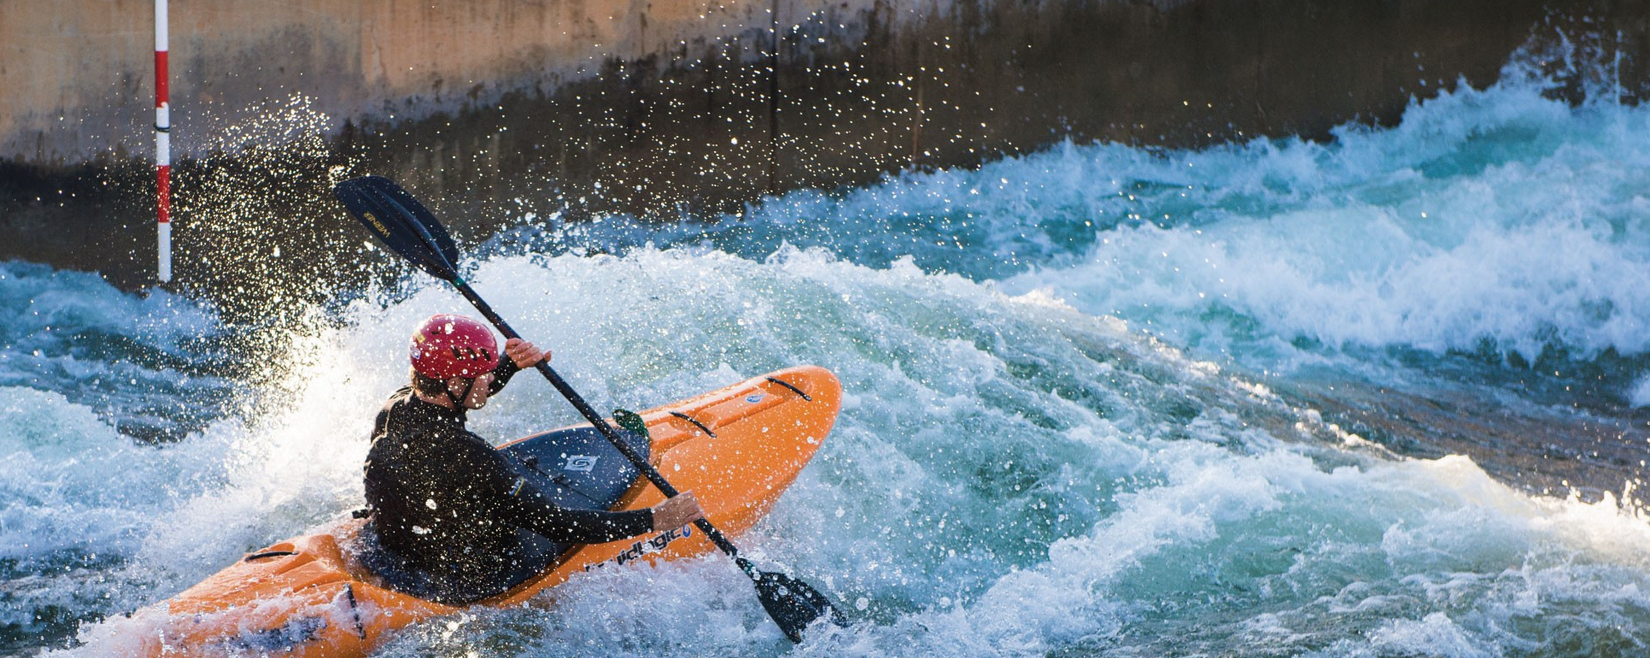 Quality Sport Programs : Canoe & Kayak (whitewater)